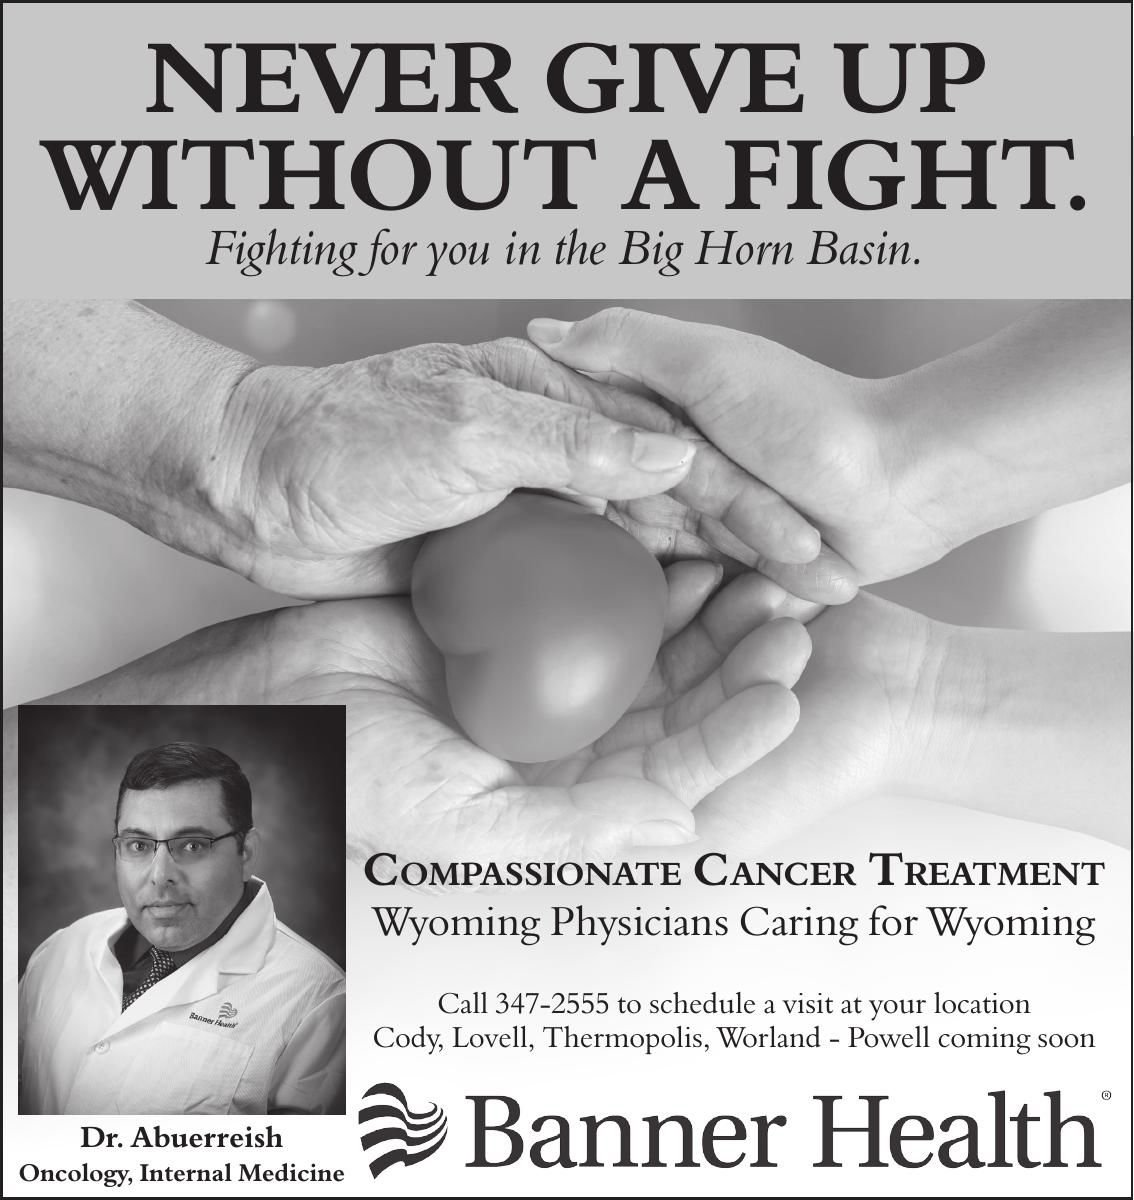 009617_washakie_medical_center_never_give_up_health